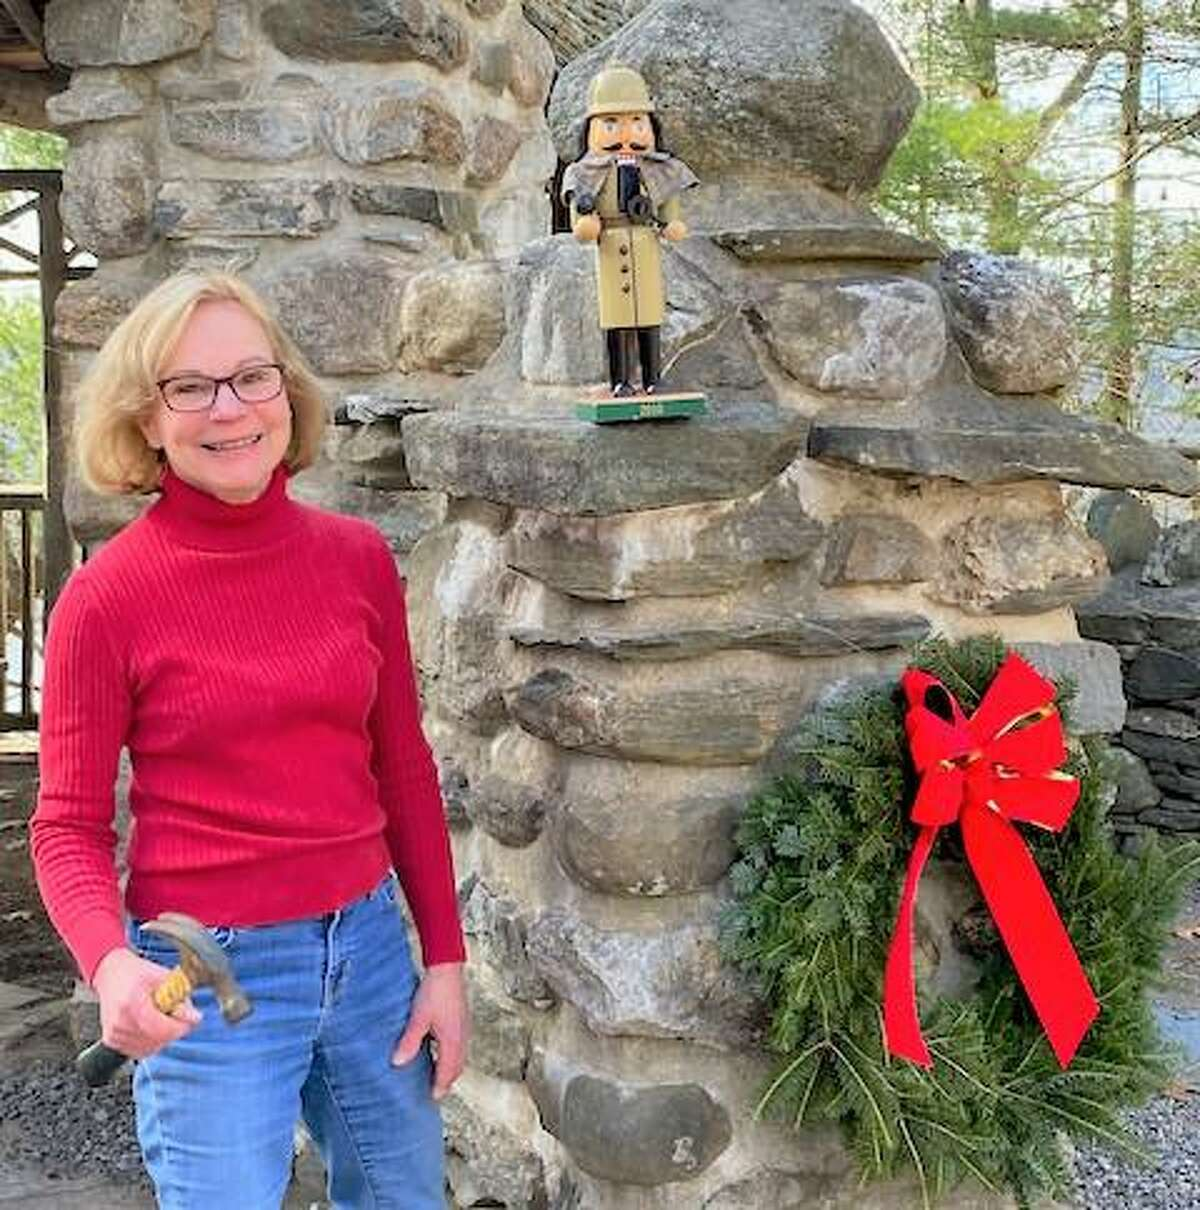 Members of the Friends of Gillette Castle State Park spent a recent weekend decorating the grounds and exterior of the late William Gillette's mansion at 67 River Road in East Haddam. Shown here is Friends members Laura Borg.